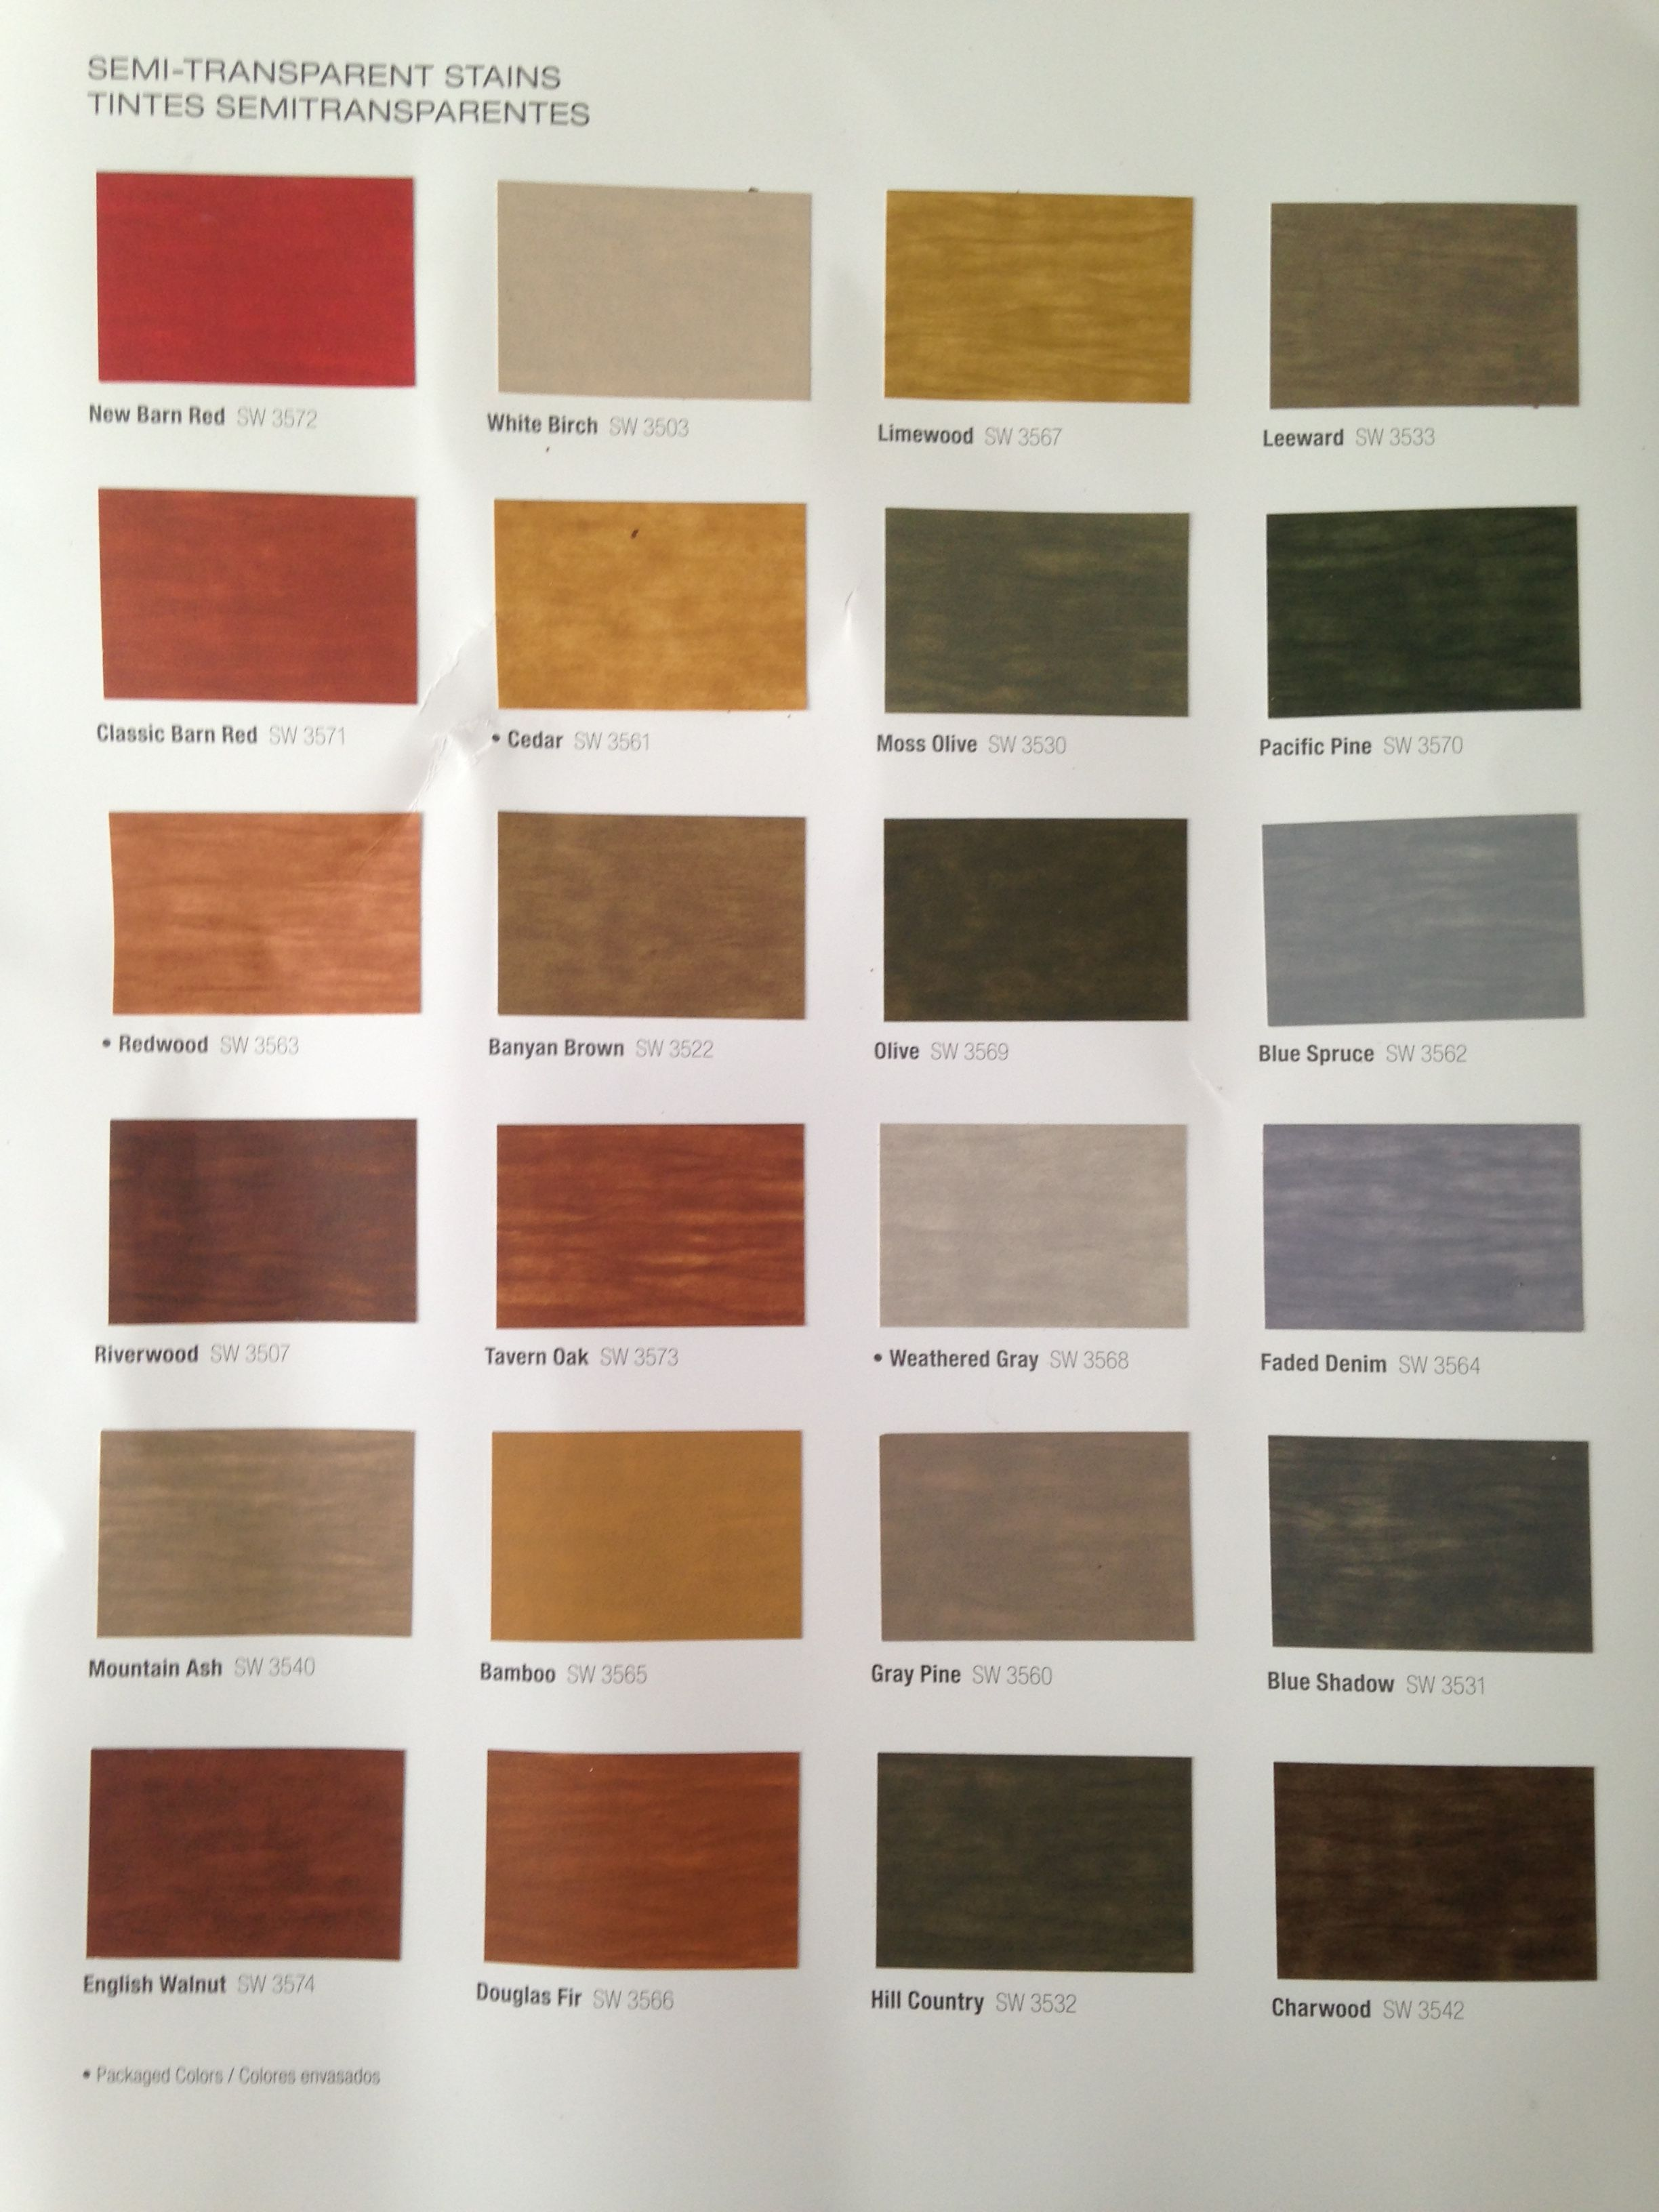 Sherwin Williams Deck Stain Review In 2020 Staining Deck Semi Transparent Stain Colors Sherwin Williams Deck Stain